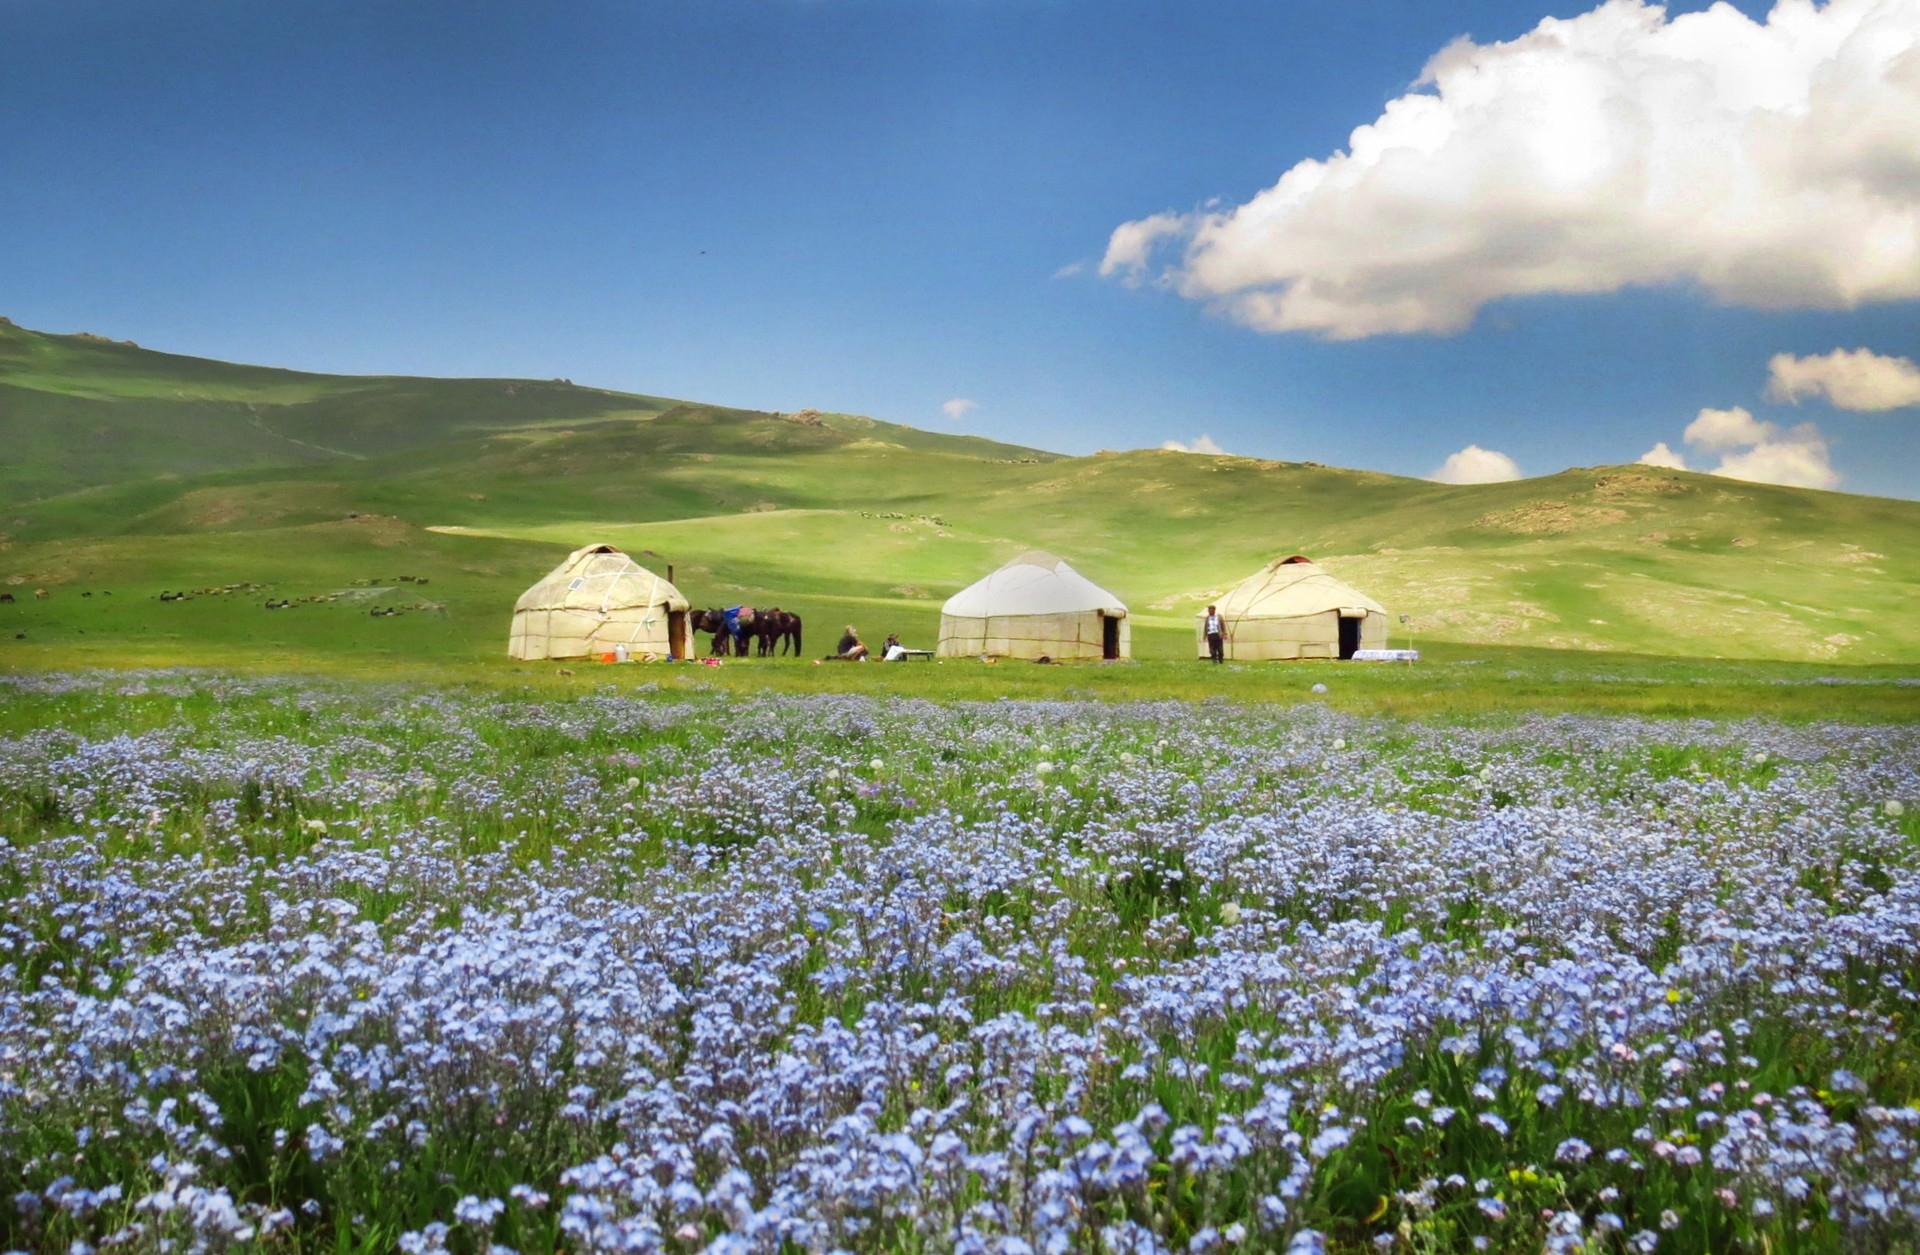 Yurts in the countryside of Kyrgyzstan